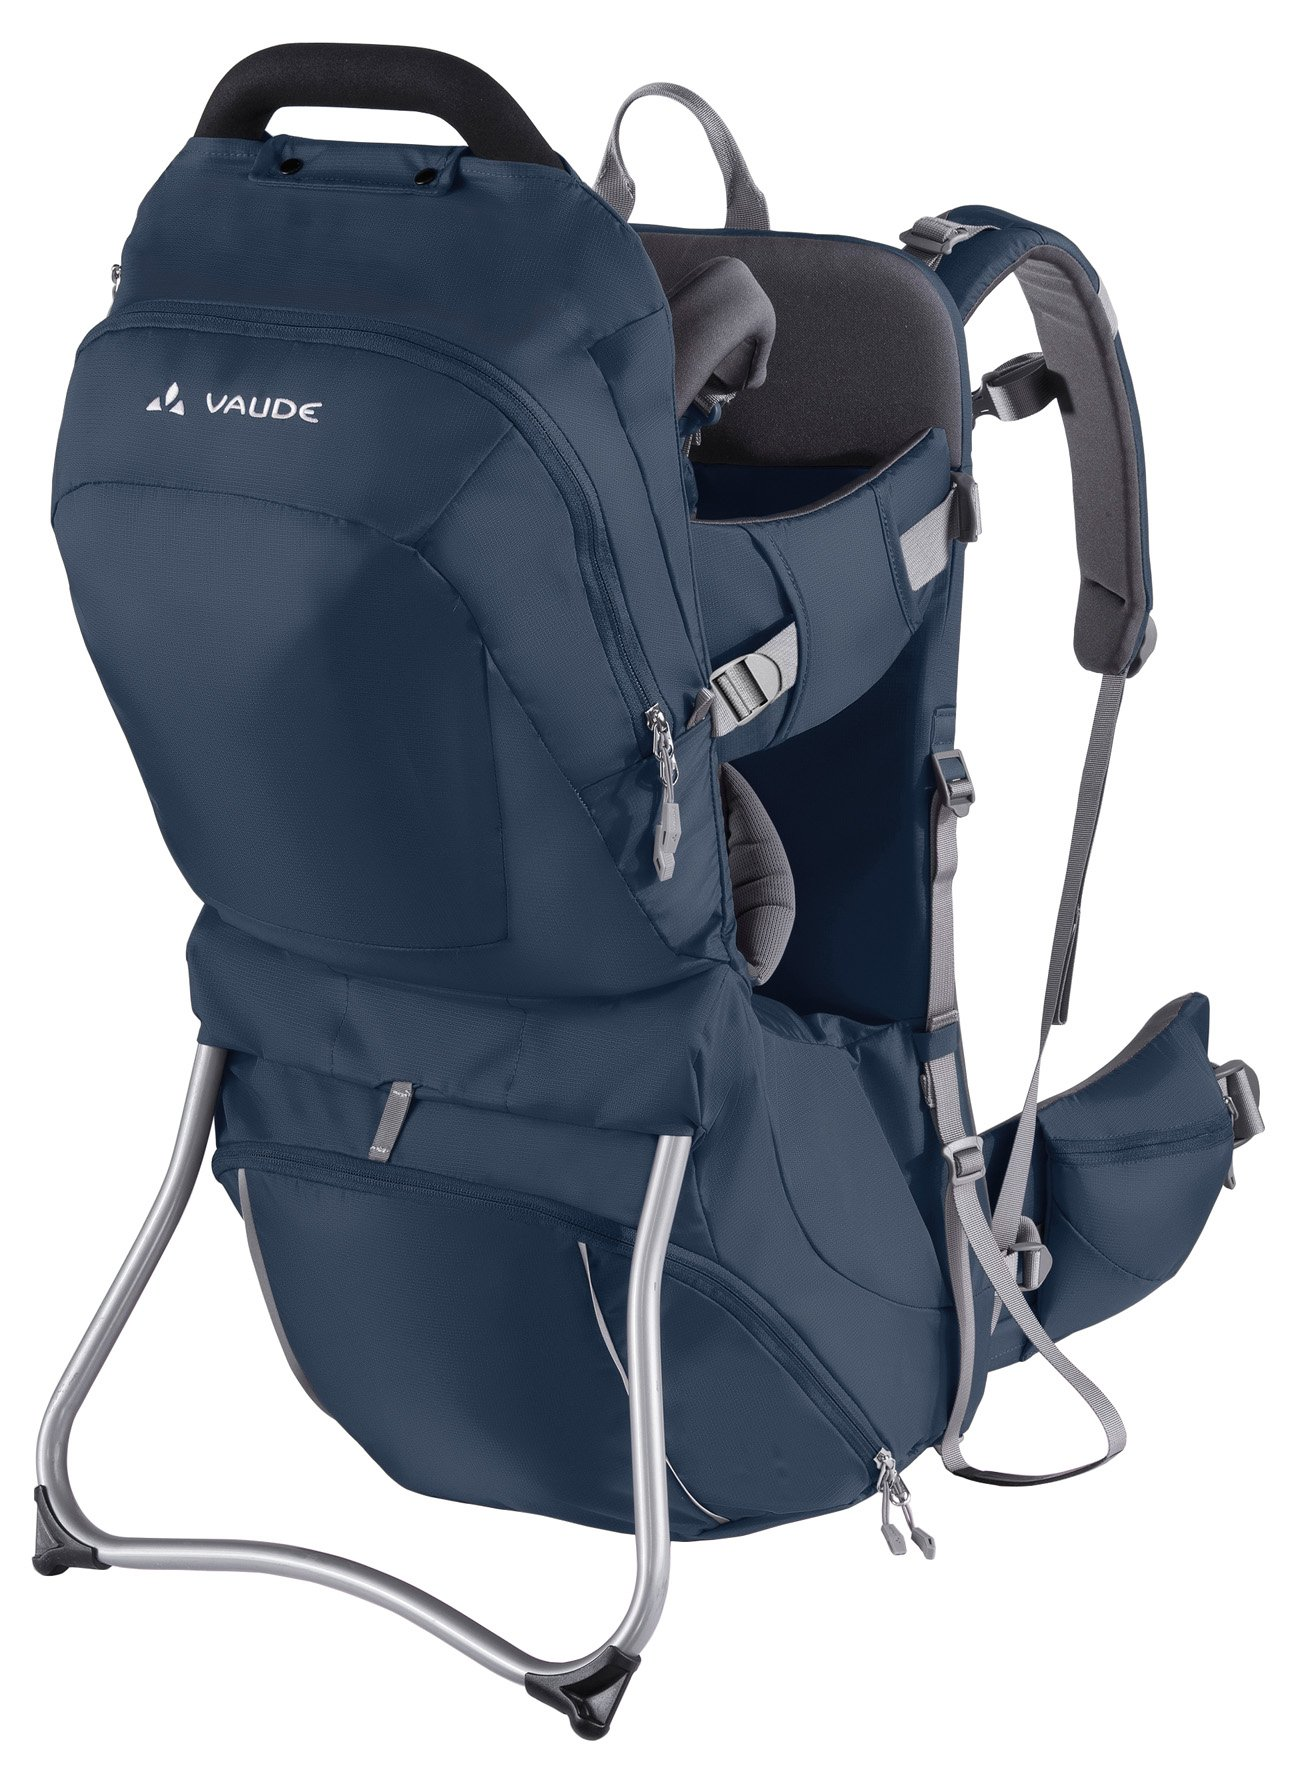 Vaude Shuttle Comfort Carrier Vaude Individually adjustable supportive back Adjustable seat height, torso support Separate bottom compartment, stowage compartment with zip 4